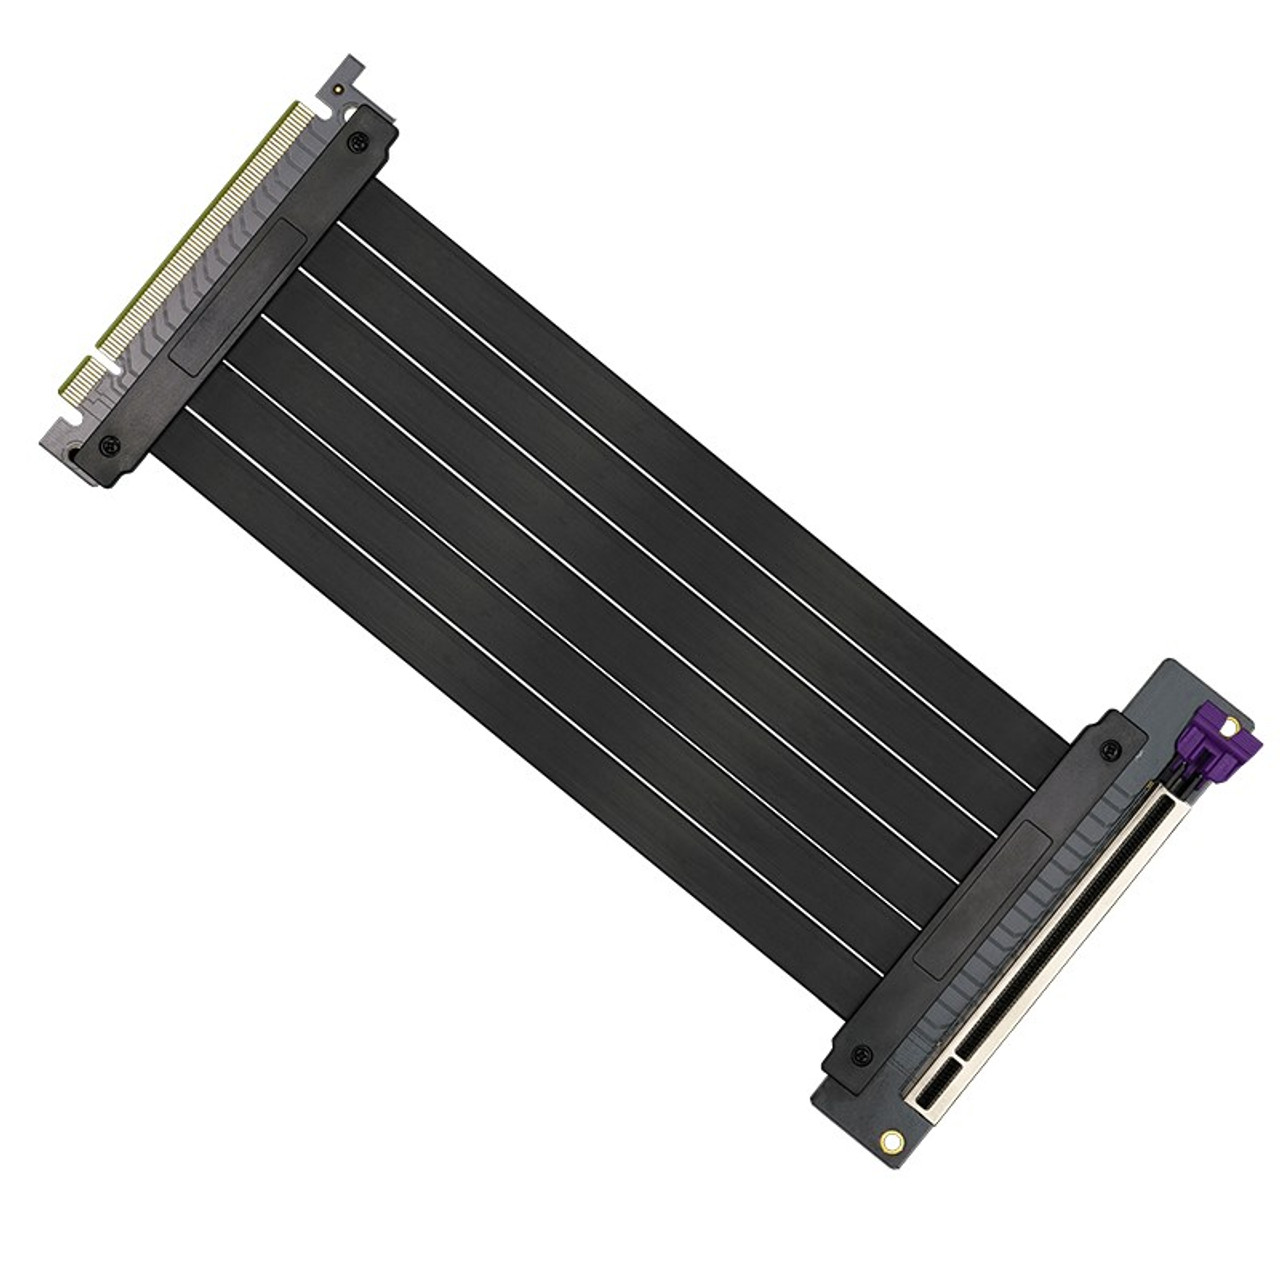 Image for Cooler Master Universal PCI-E 3.0 x16 Riser Cable V2 - 200mm CX Computer Superstore